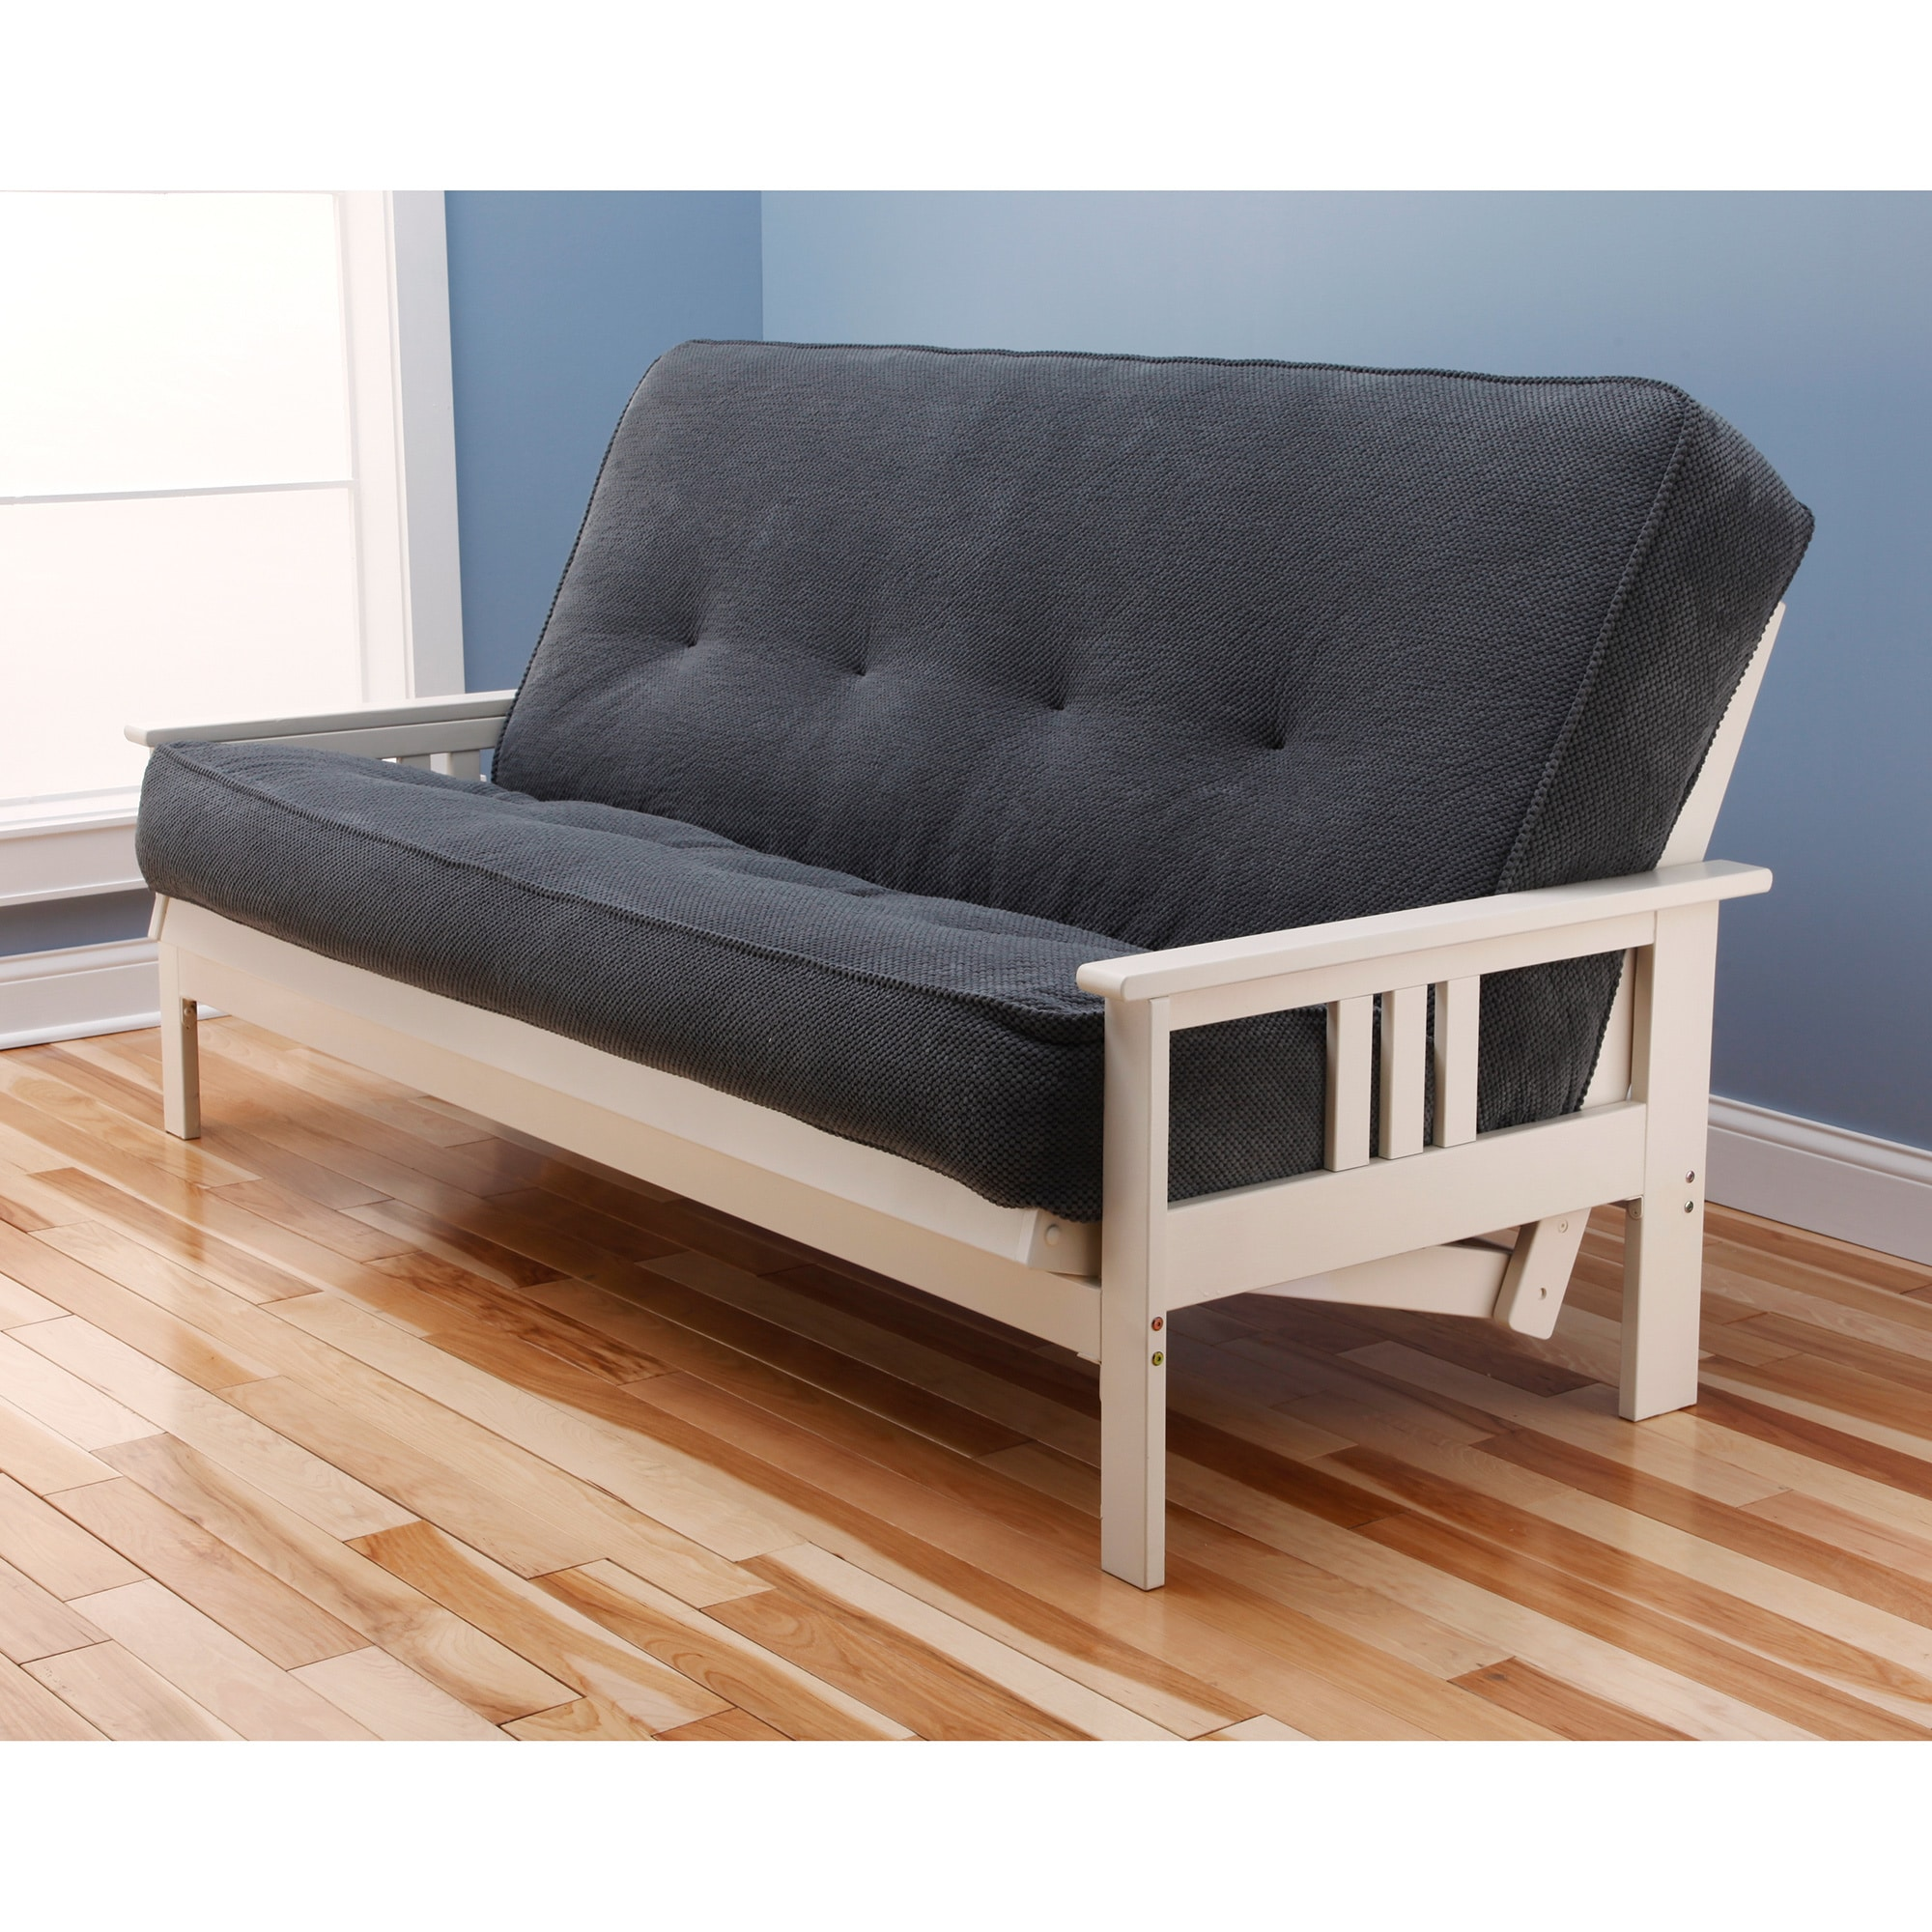 Somette Beli Mont Multi Flex Futon Frame In Antique White Wood Mattress Not Included Free Shipping Today Com 8667590